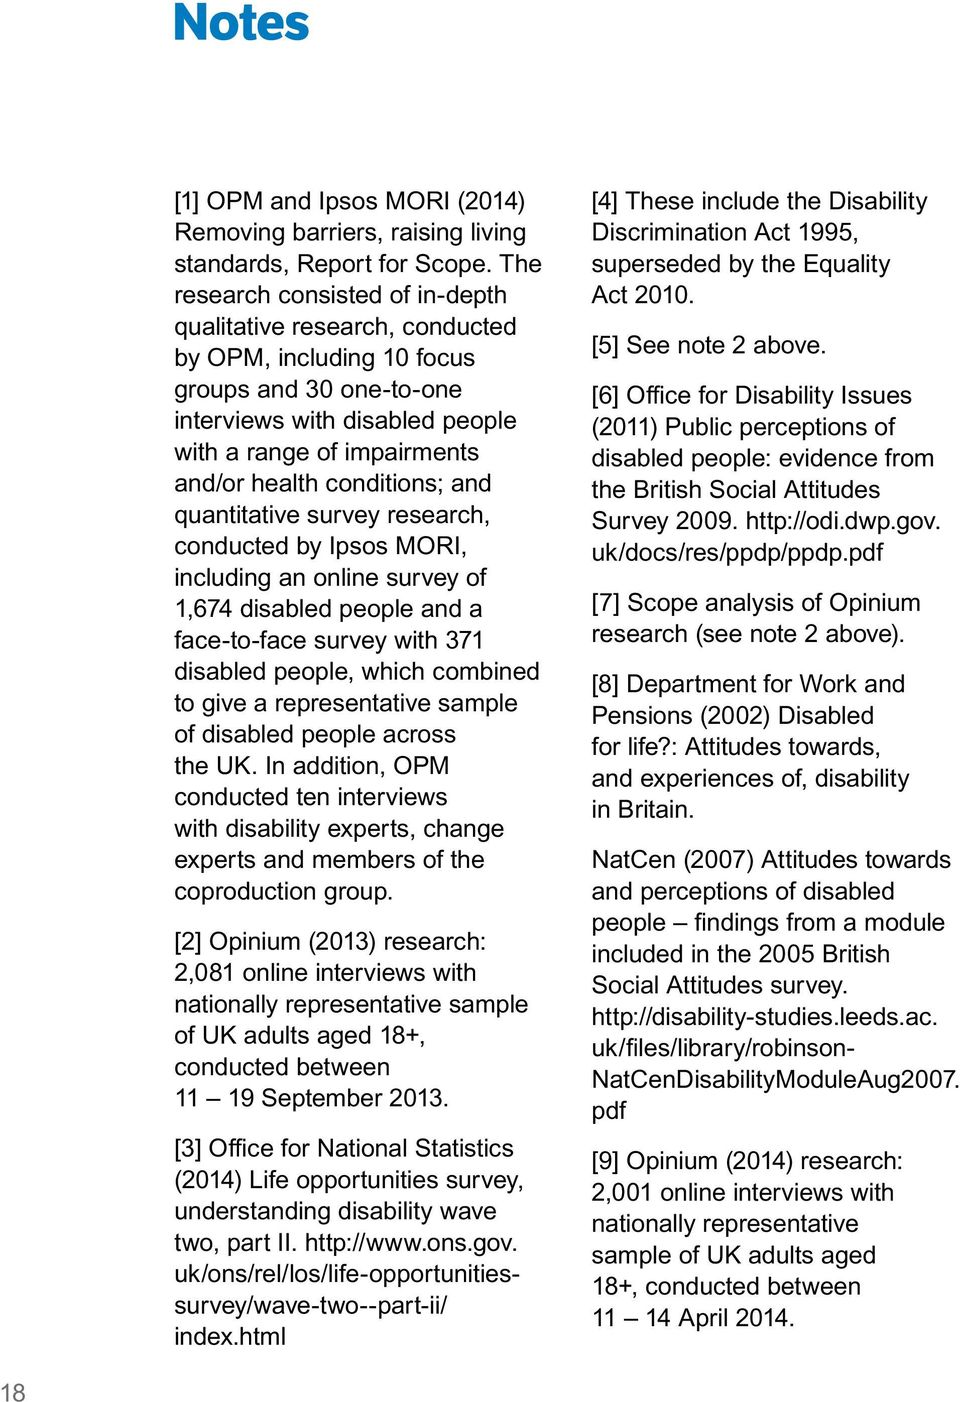 conditions; and quantitative survey research, conducted by Ipsos MORI, including an online survey of 1,674 disabled people and a face-to-face survey with 371 disabled people, which combined to give a